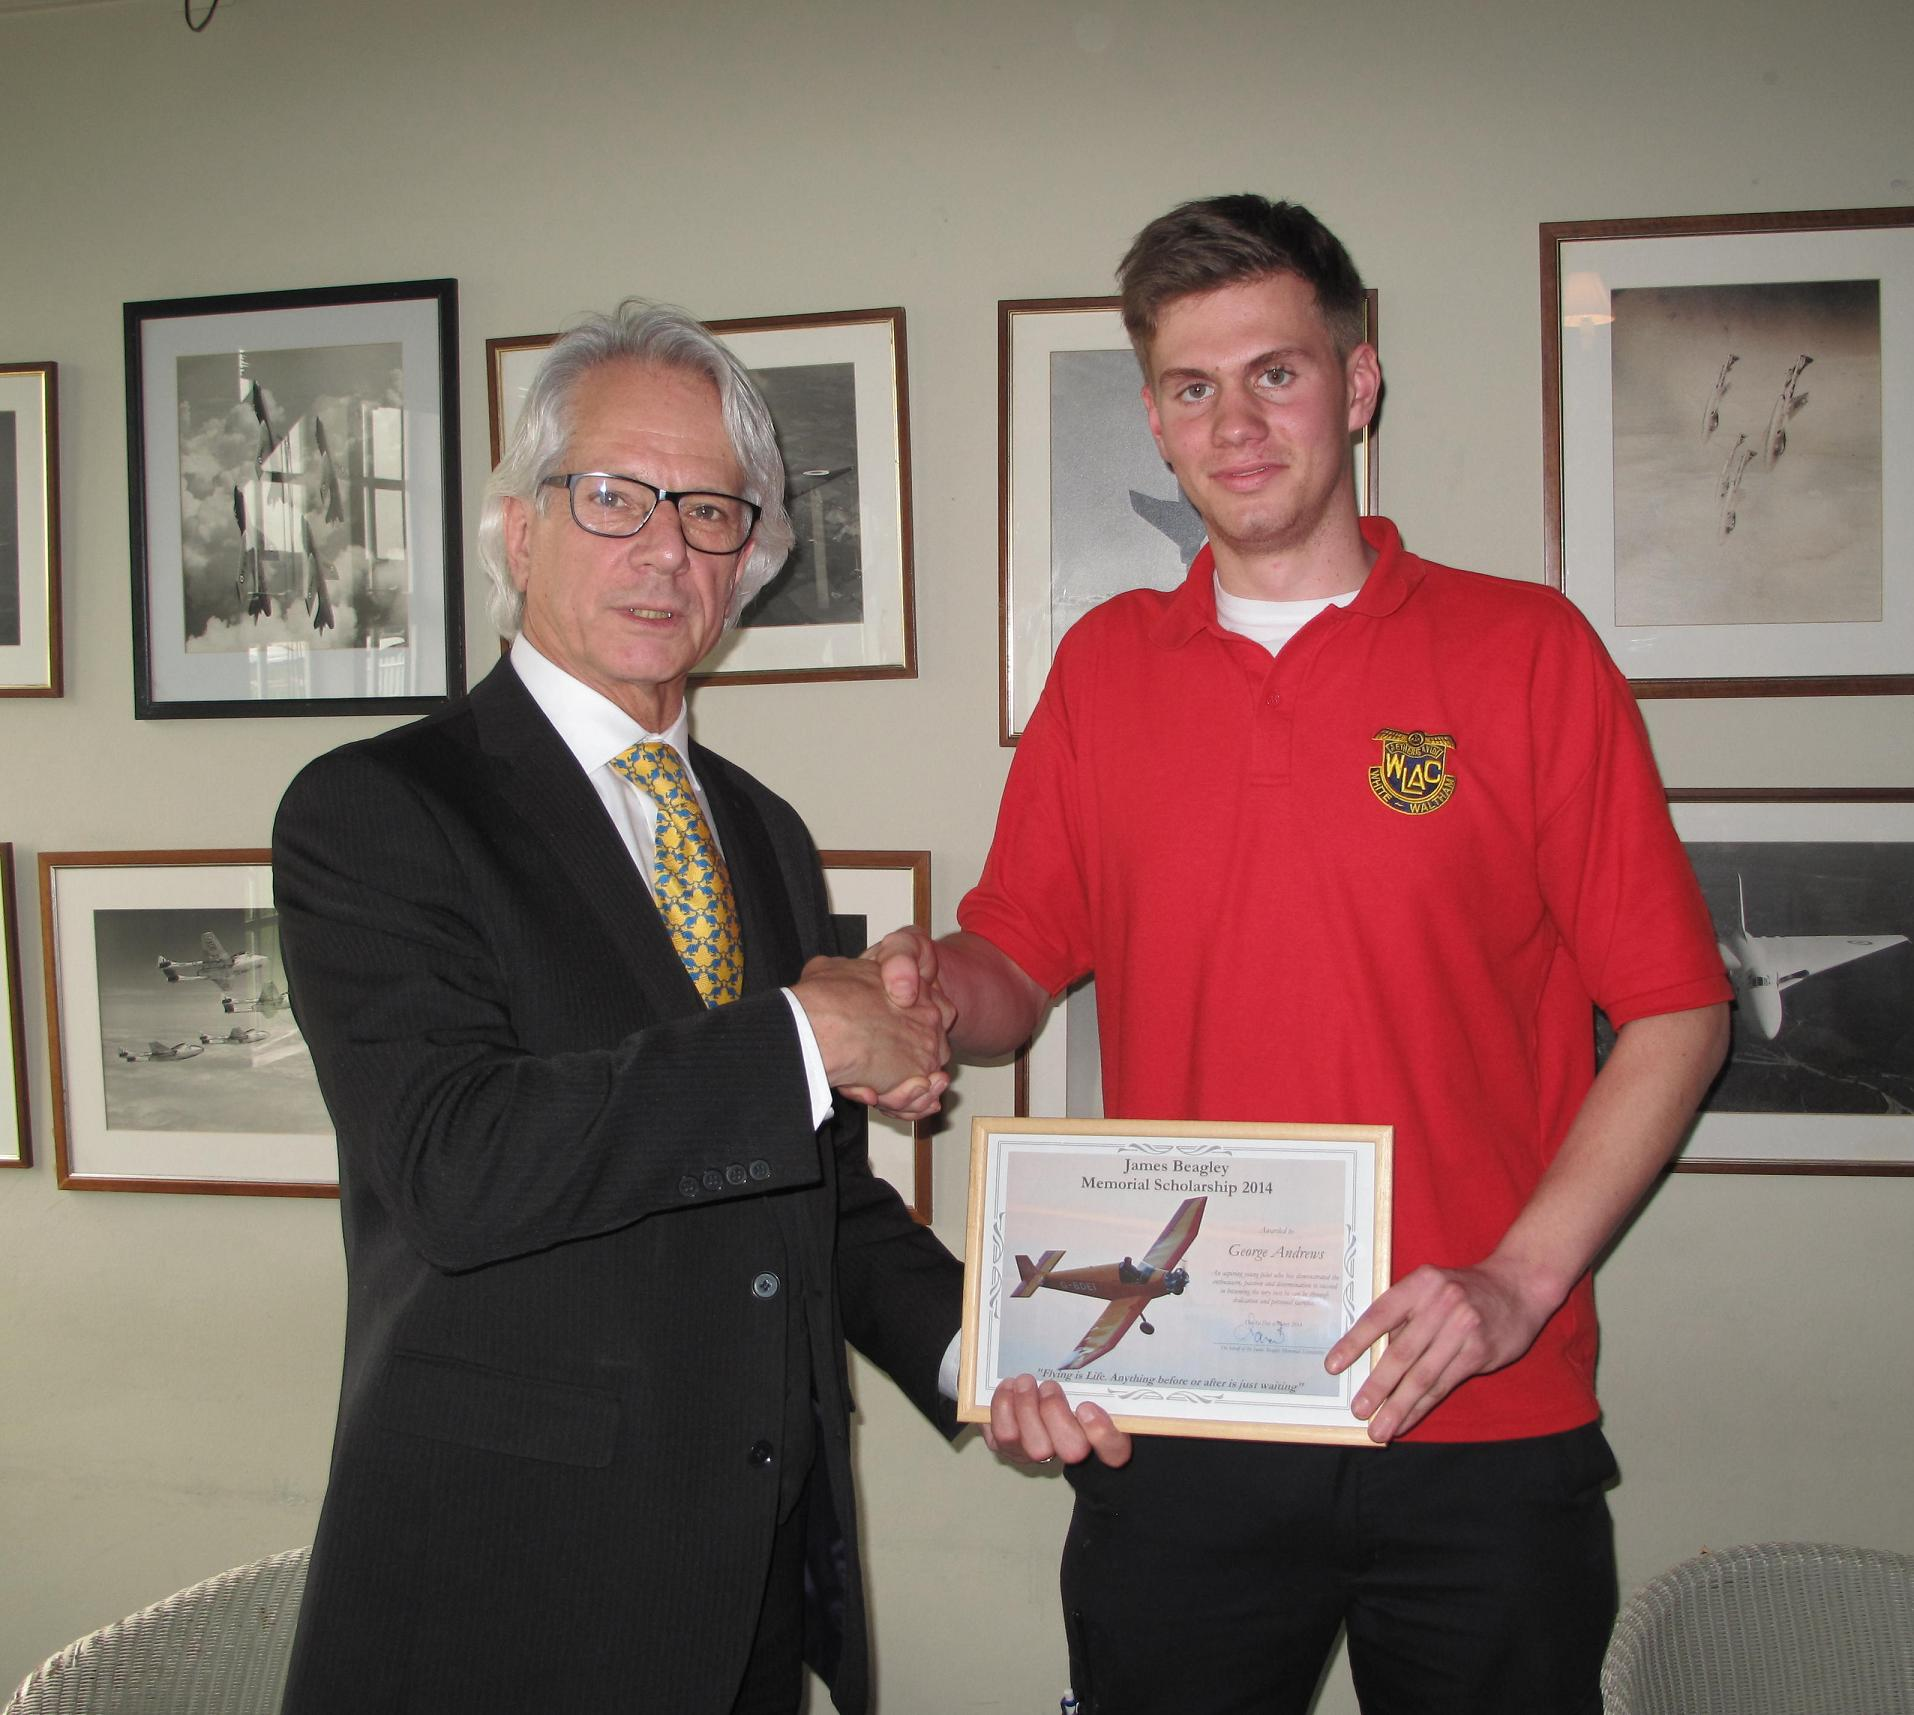 Alan Beagley with George Andrews, the newest recipient of the James Beagley Memorial Scholarship